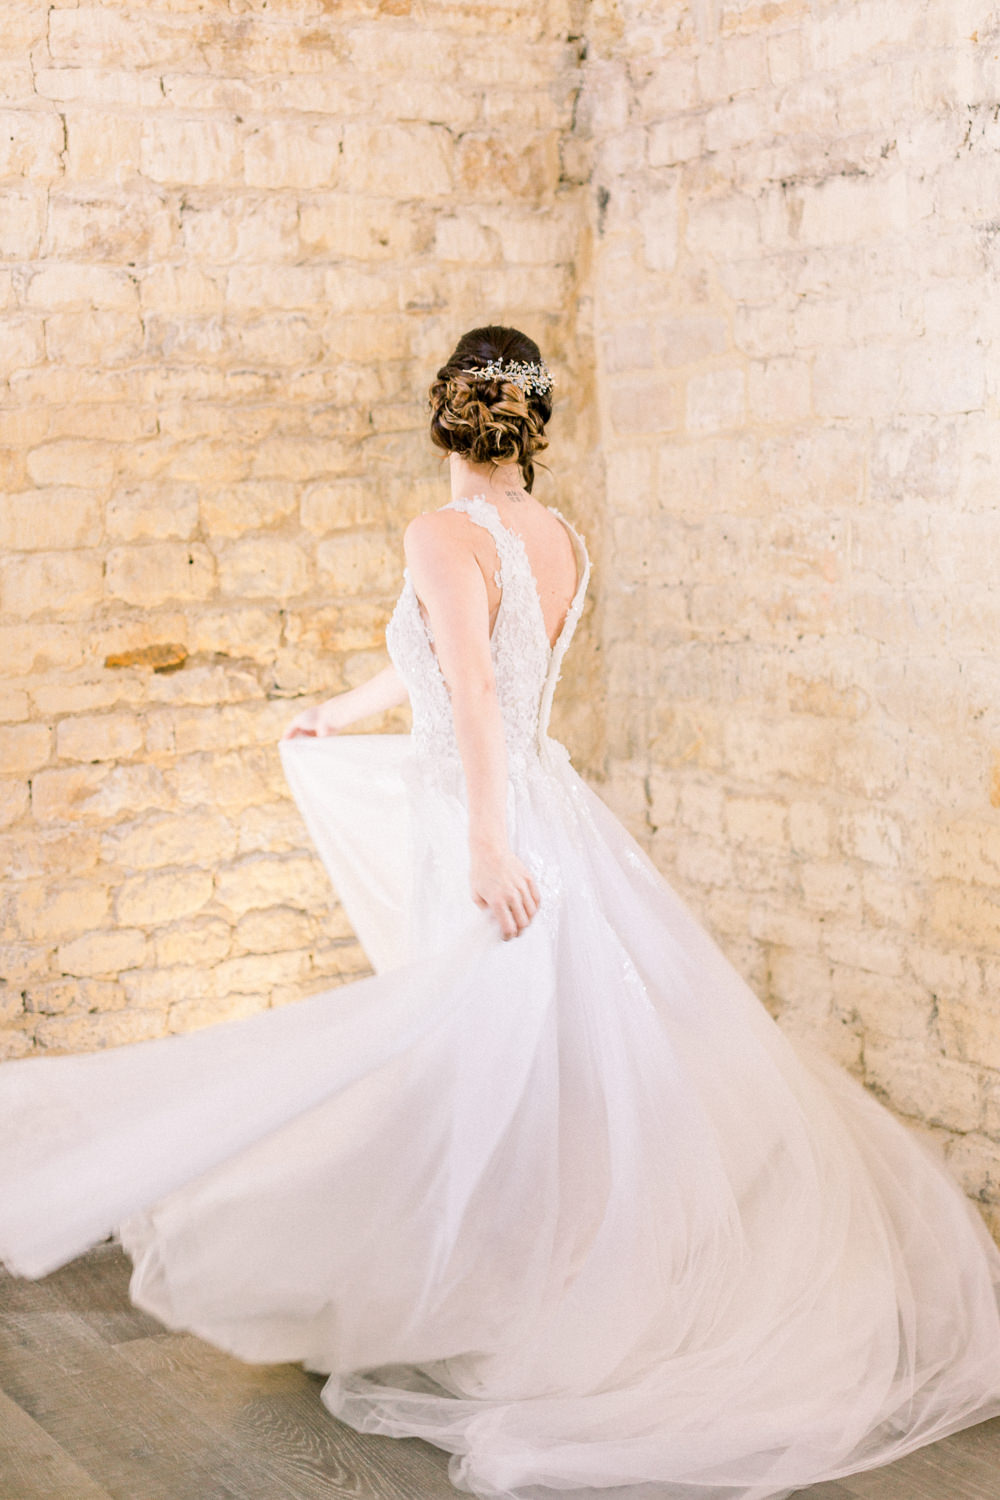 Dress Gown Bride Bridal Skirt Winter Blue Barn Wedding Ideas Joanna Briggs Photography